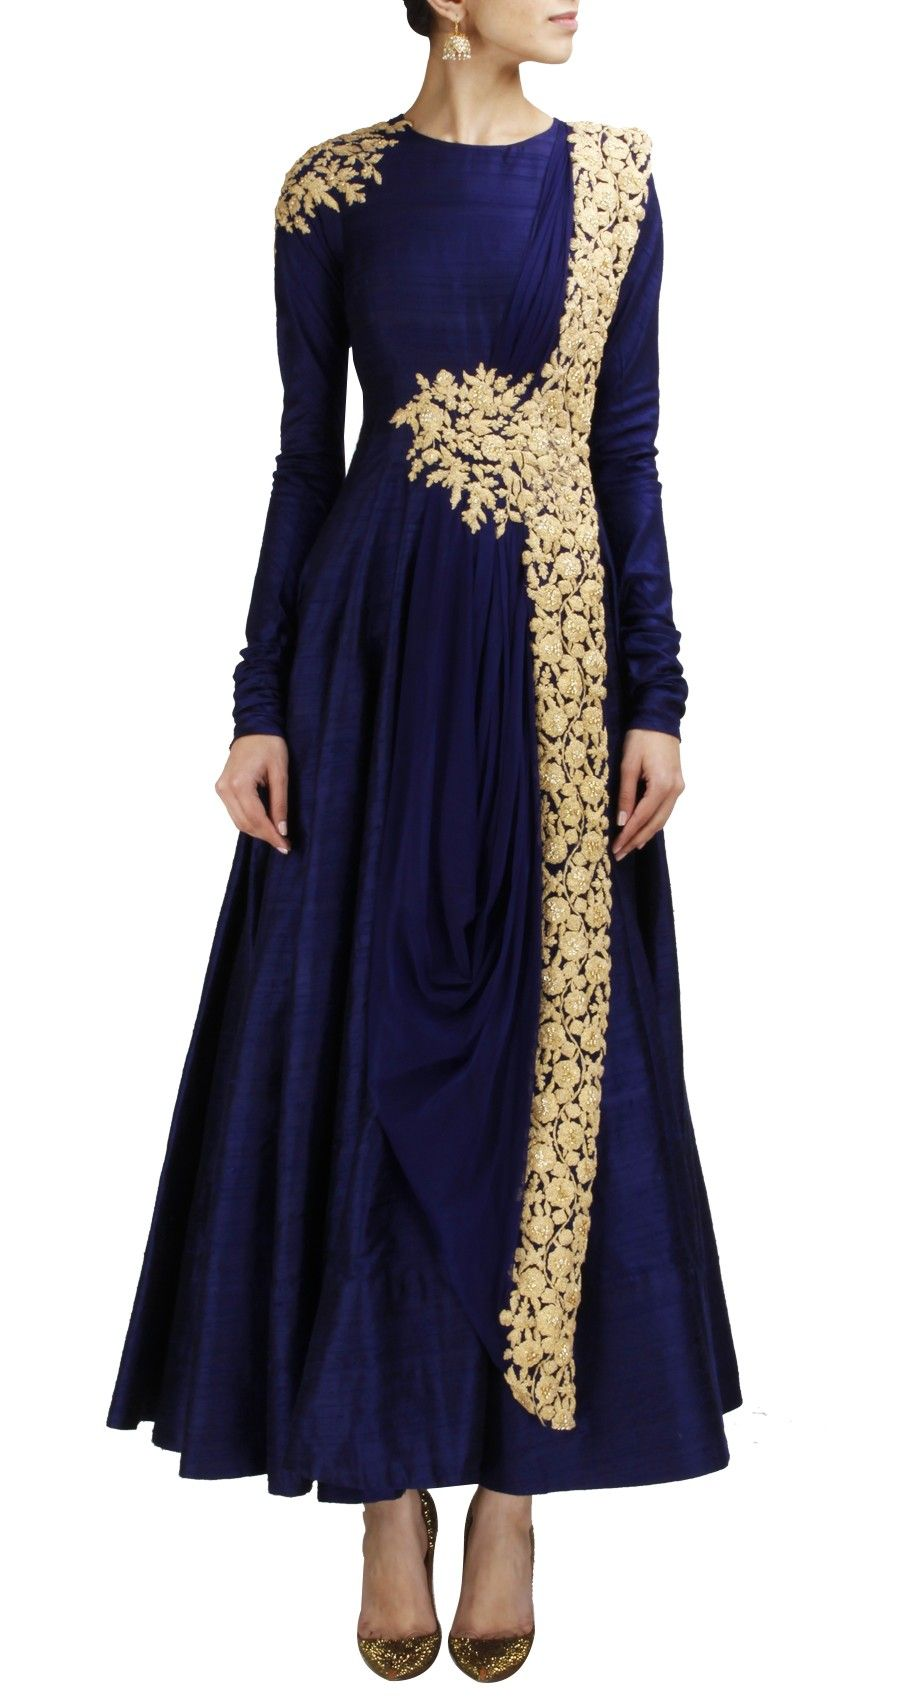 Ridhi Mehra. This is so elegant - love the restrained embroidery and ...